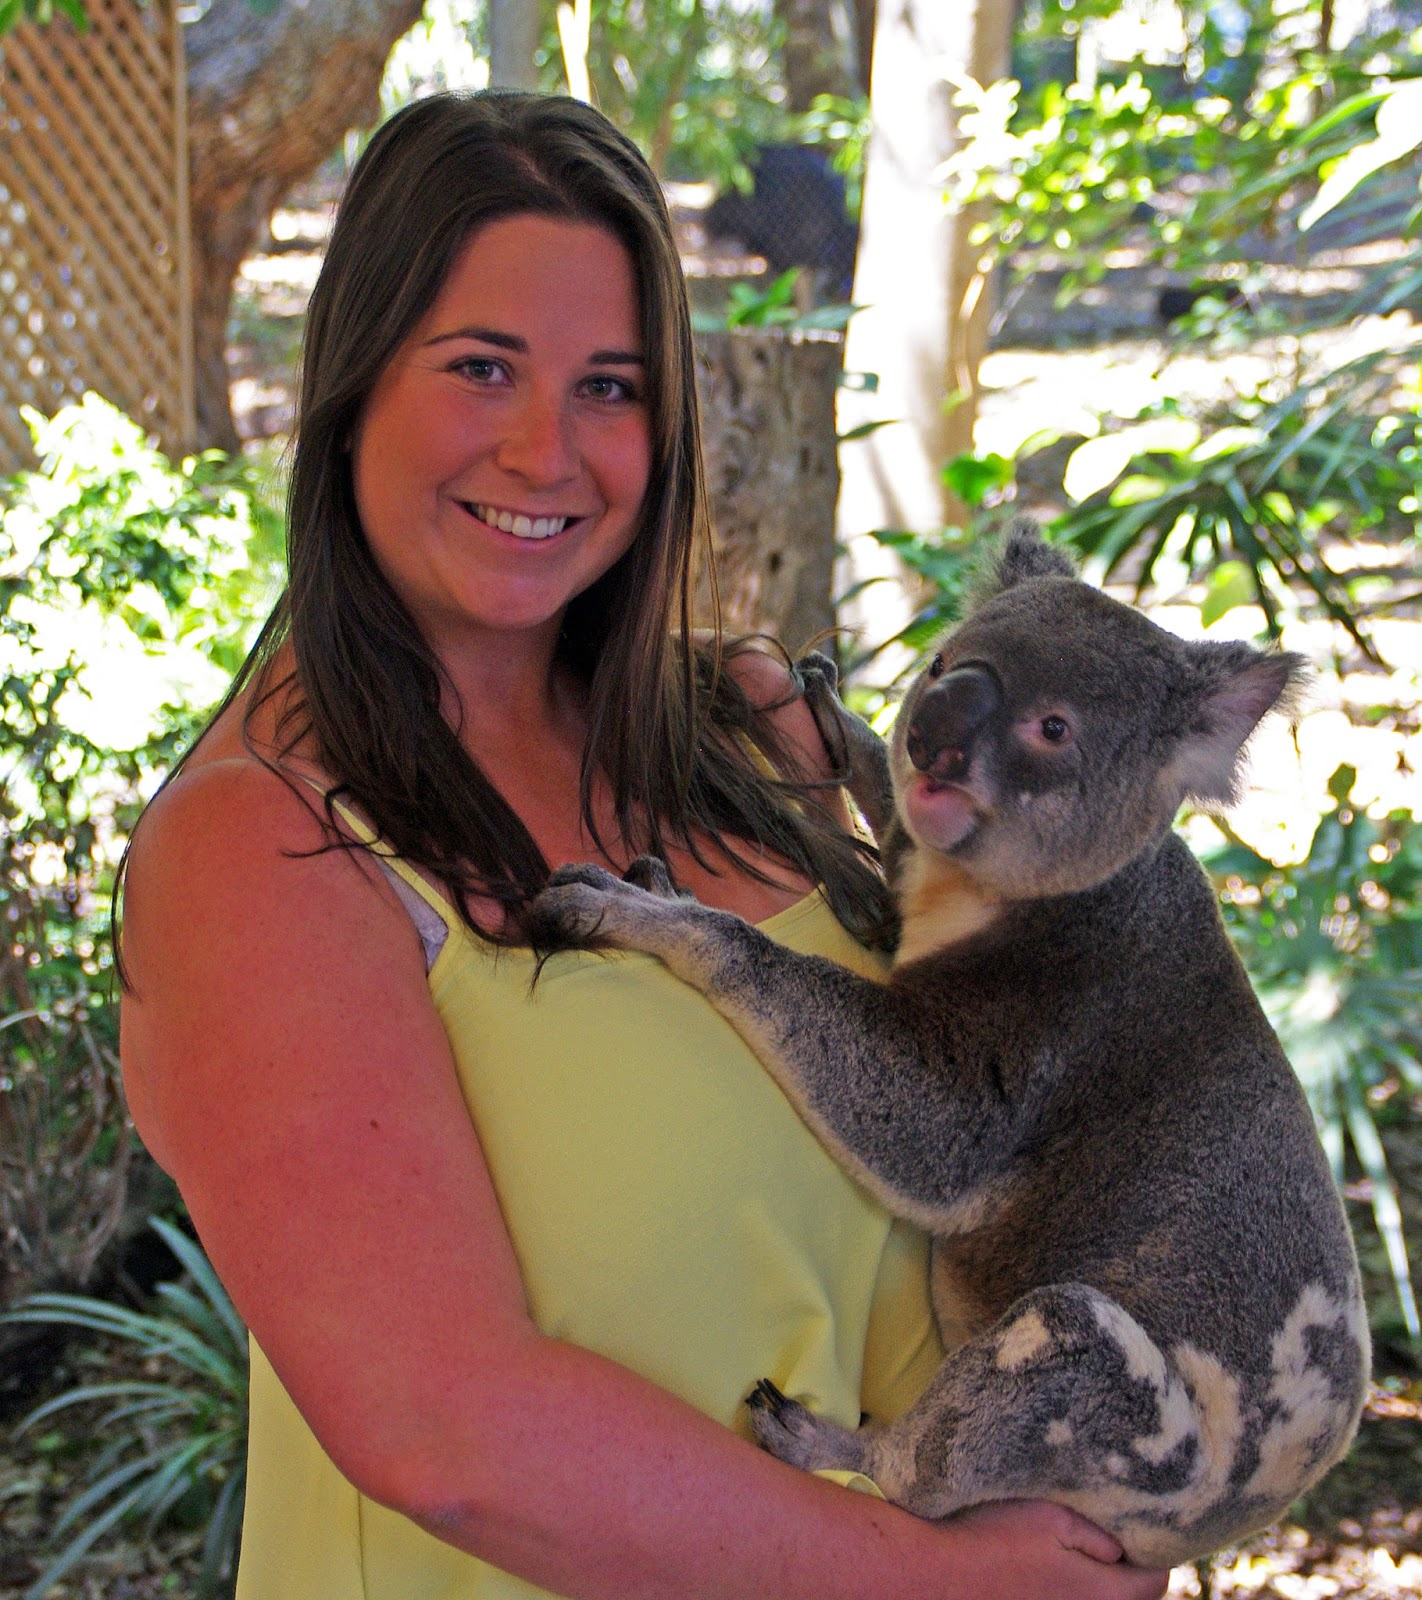 Aussie Flashpacker with Koala